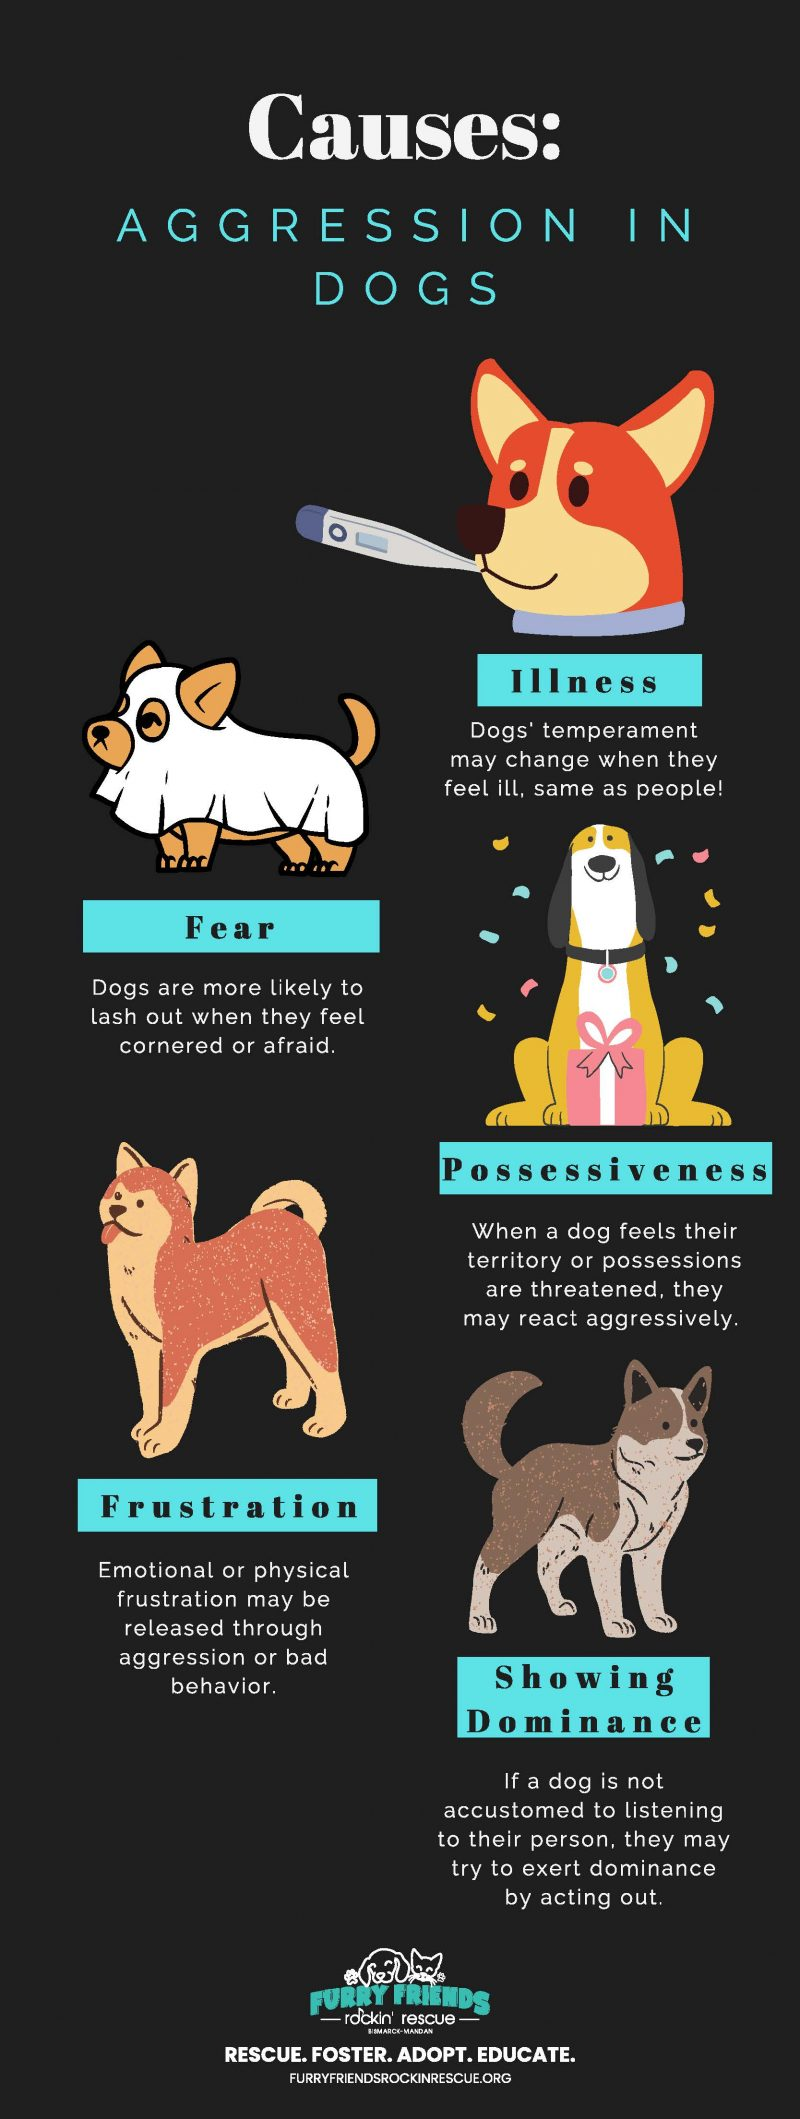 Causes of aggression in Dogs Infographic - Furry Friends Rockin' Rescue